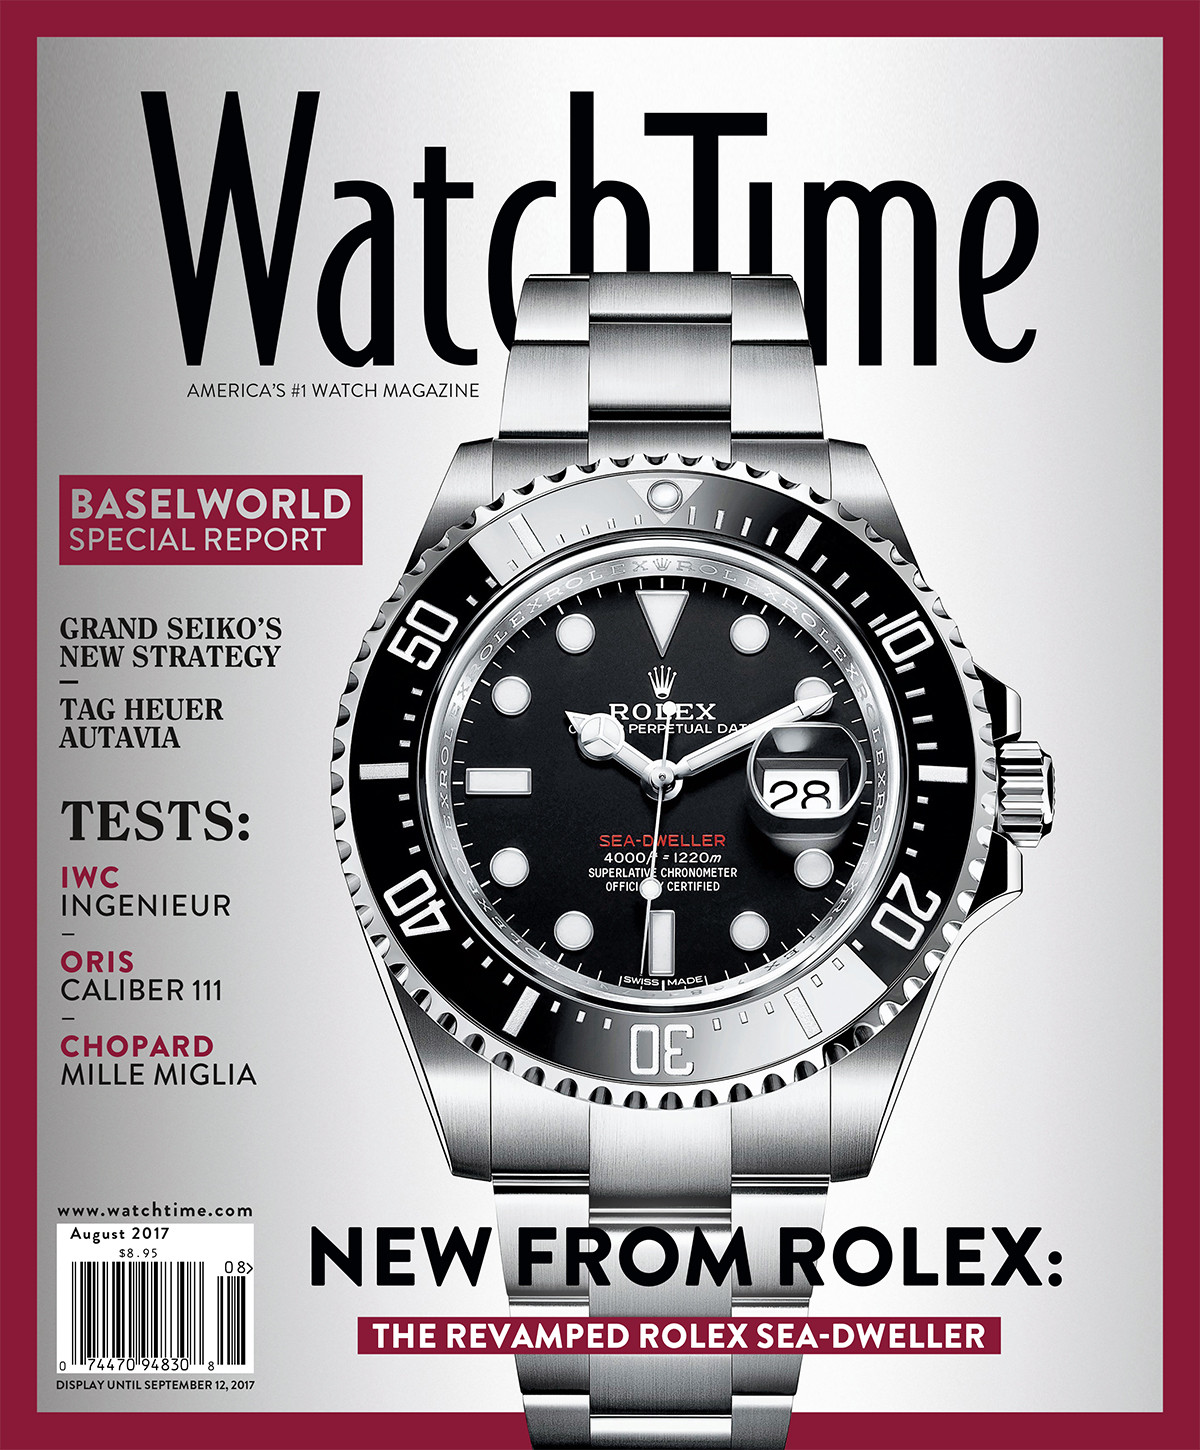 Watch Time August 2017: New from Rolex: The Revamped Rolex Sea-Dweller +++ Baselworld Special Report +++ Grand Seiko's new strategy +++ Tag Heuer: Autavia +++ Tests: IWC Ingenieur, Oris Caliber 111, Chopard Mille Miglia +++